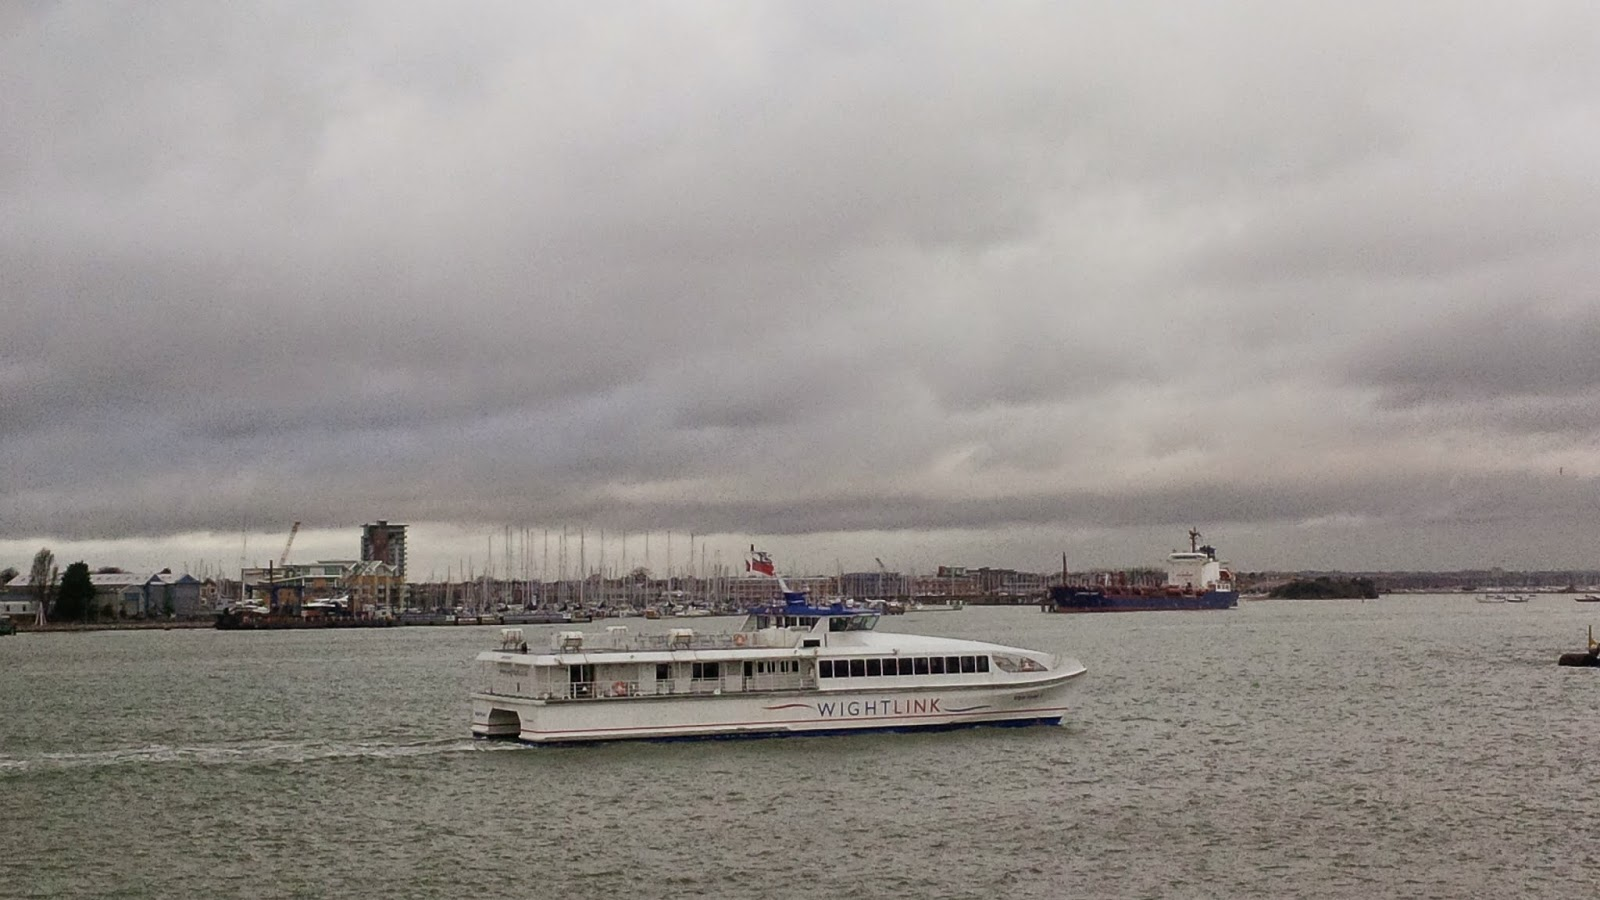 The Wightlink ferry on its way to the Isle of Wight